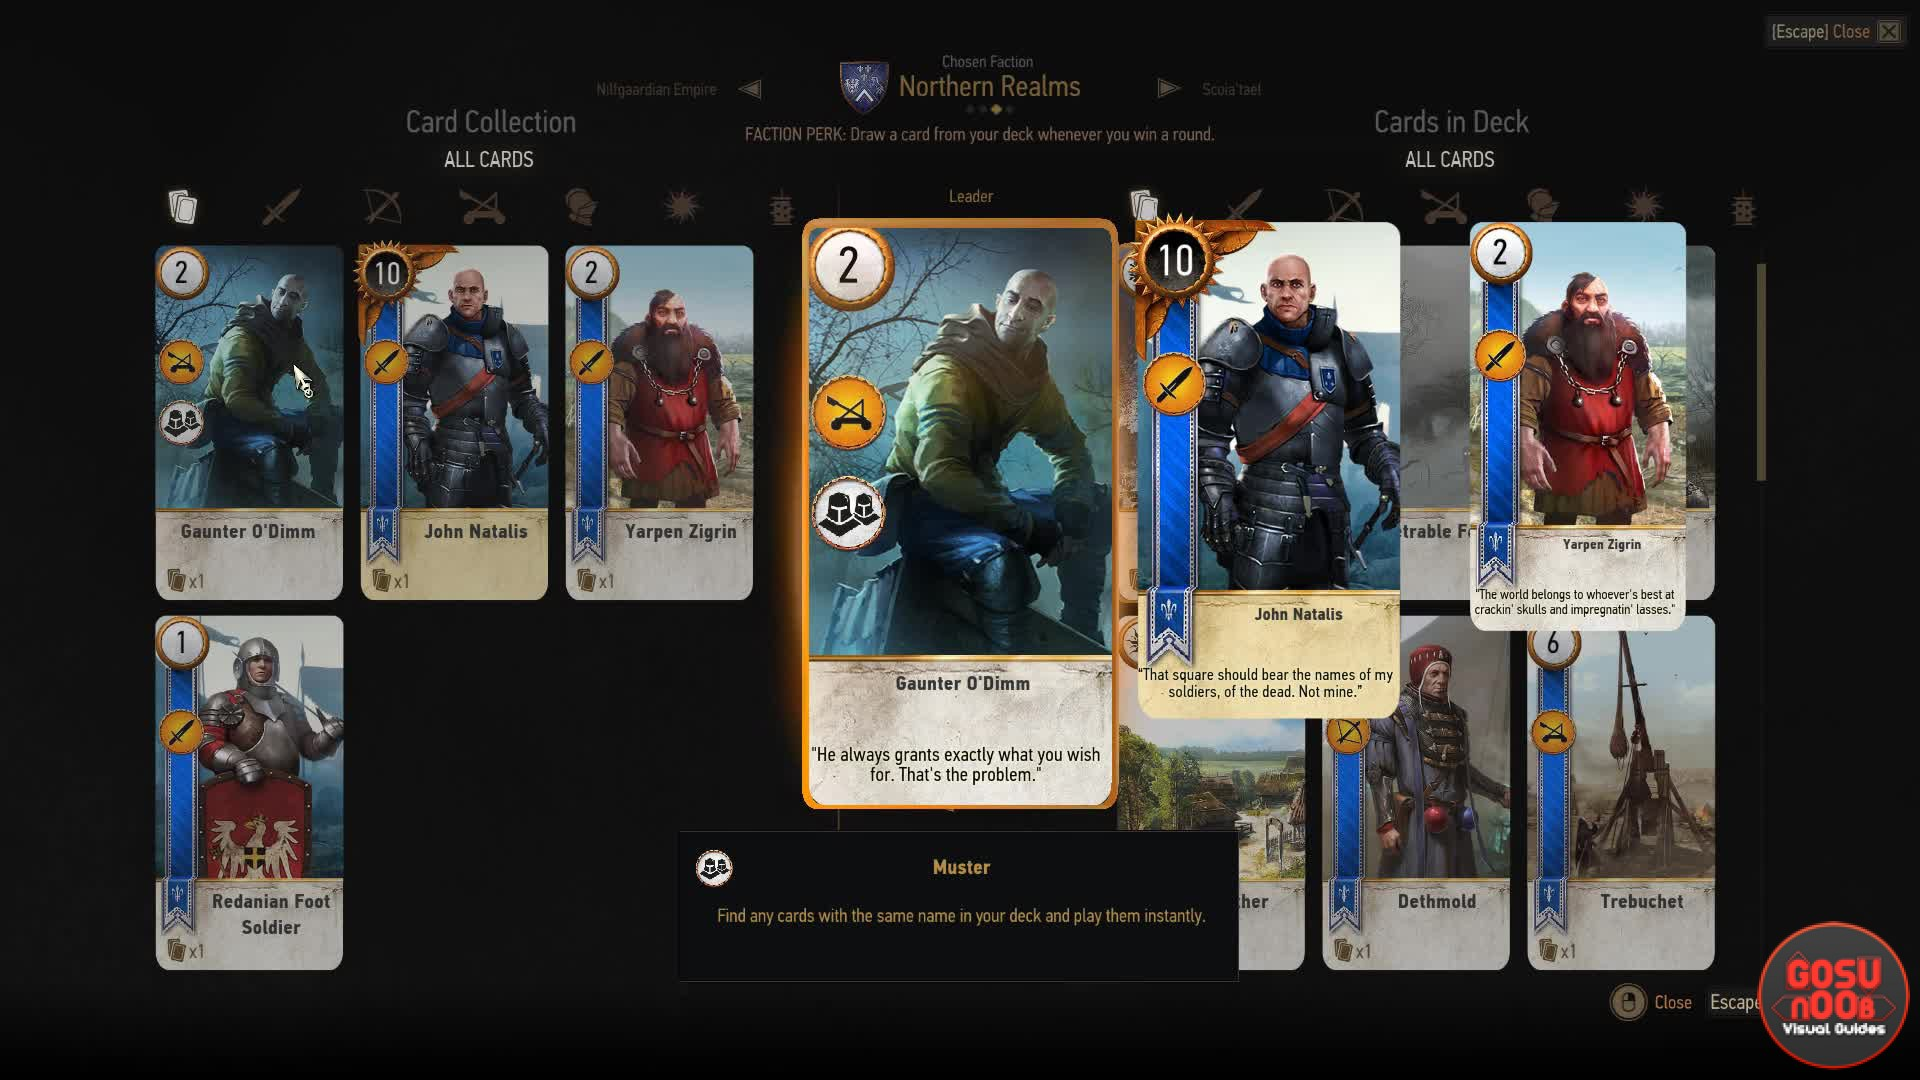 Gwent card locations the witcher 3 - Gwent Card Locations The Witcher 3 56